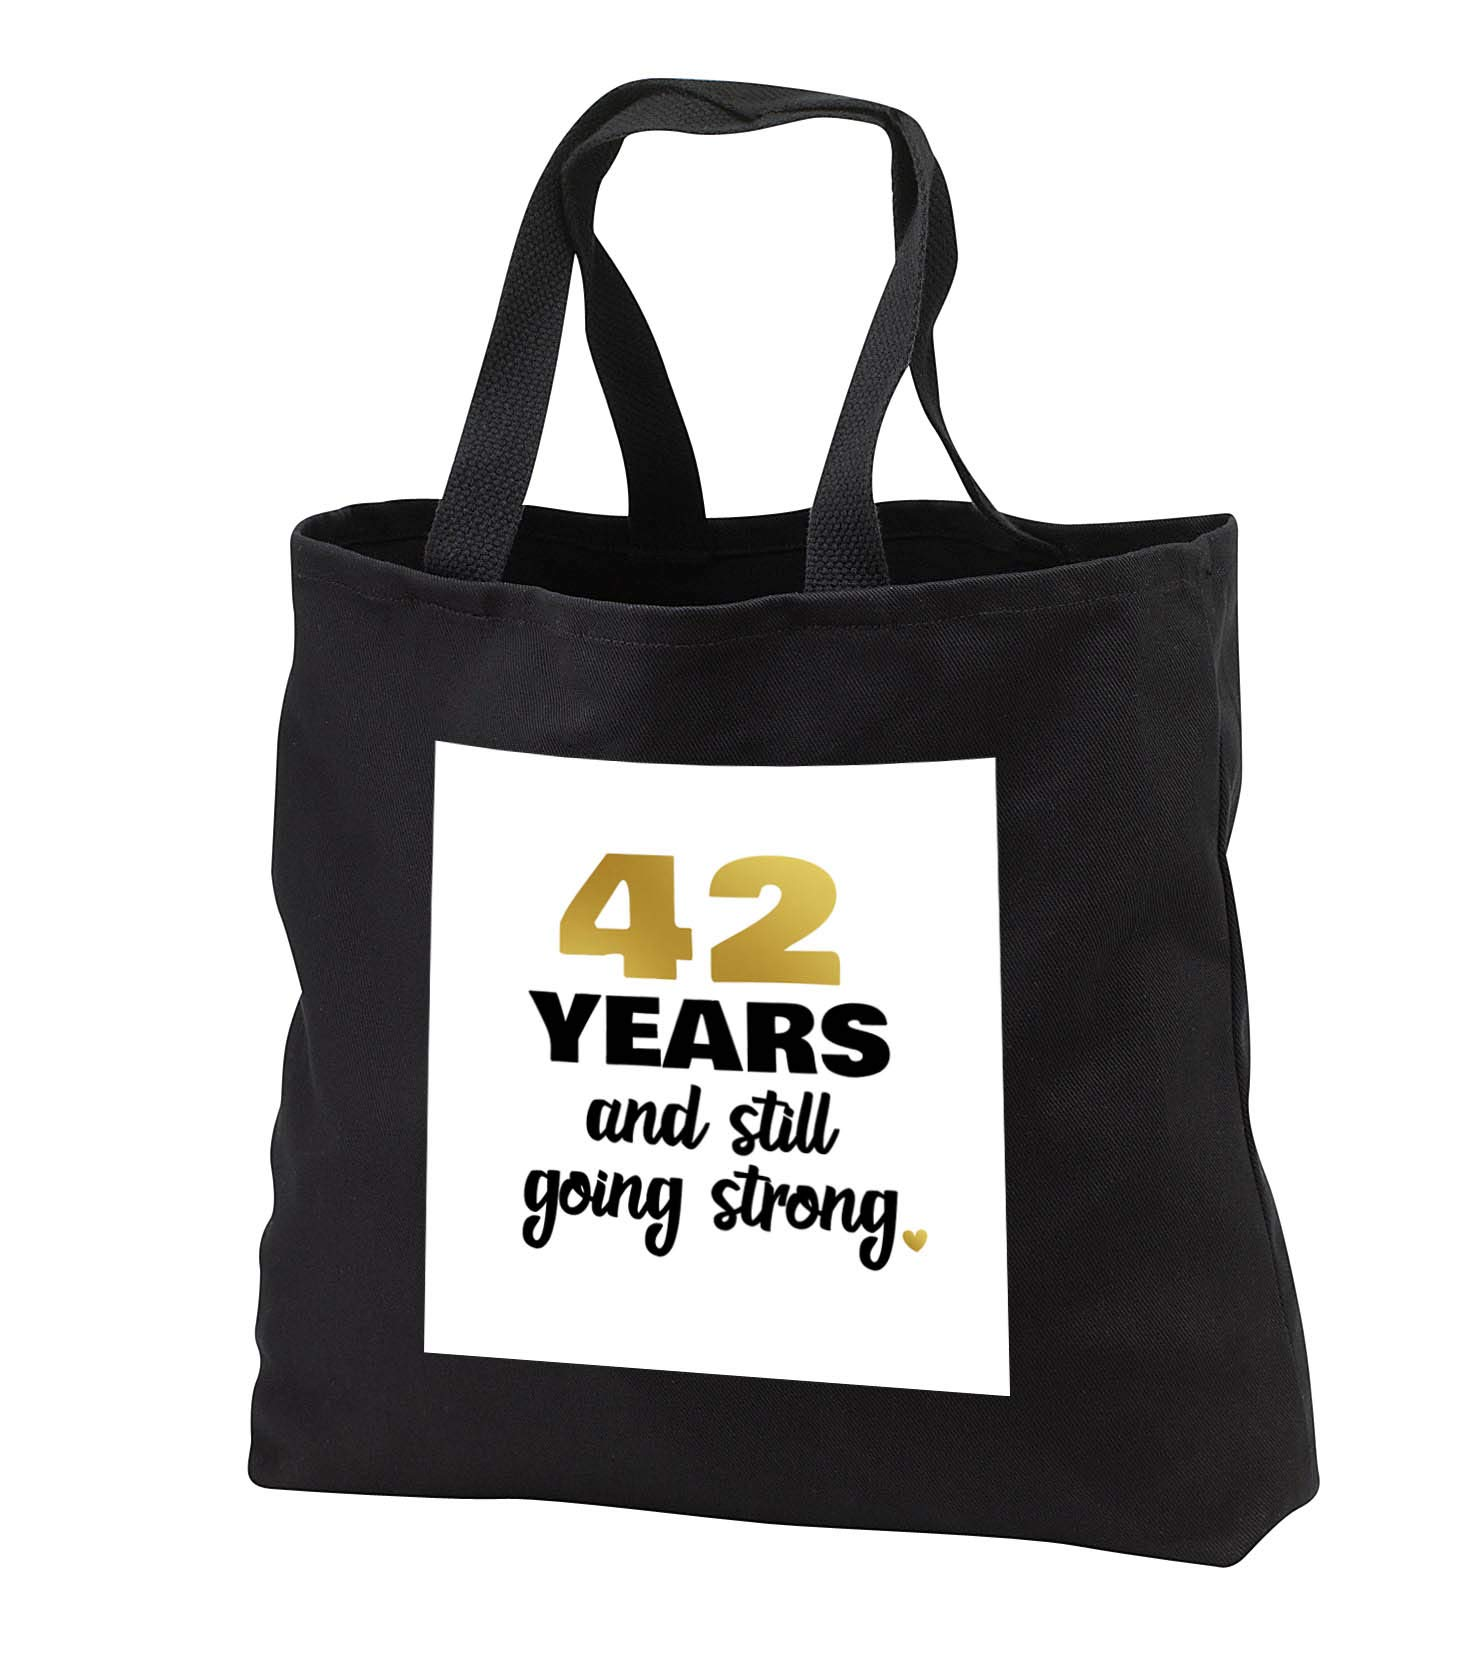 Janna Salak Designs Anniversary - 42 Year Anniversary Still Going Strong 42nd Wedding Anniversary Gift - Tote Bags - Black Tote Bag 14w x 14h x 3d (tb_289677_1)